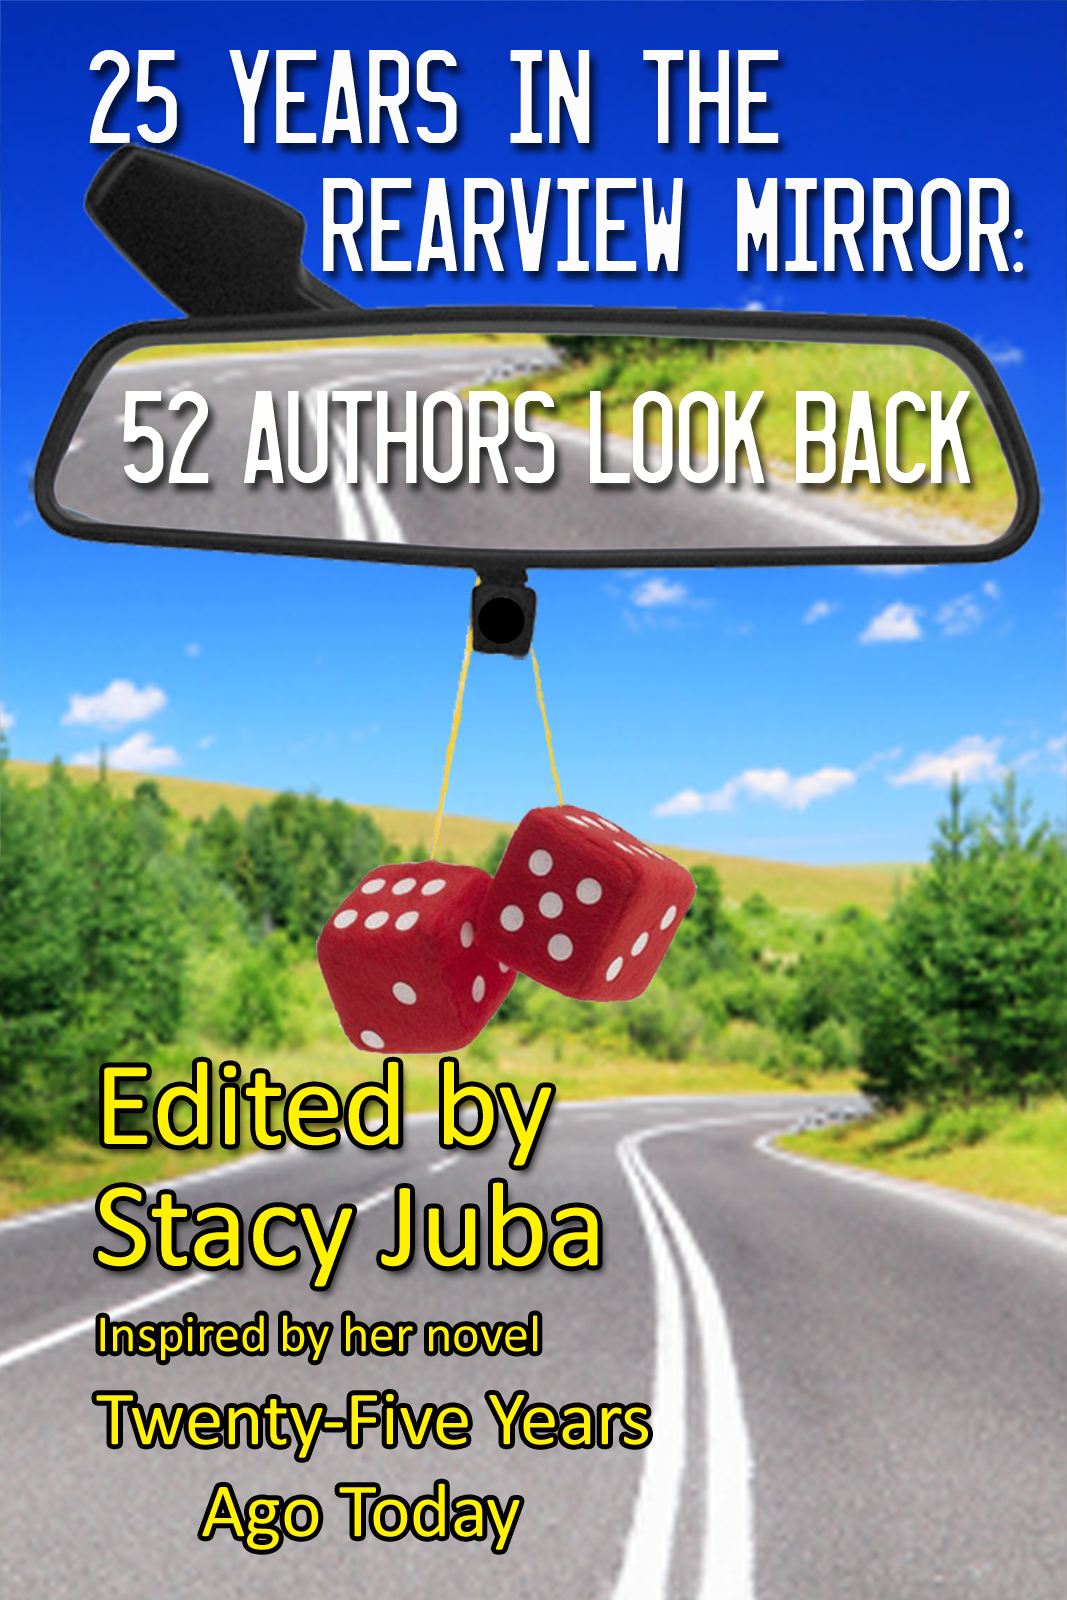 25 Years in the Rearview Mirror: 52 Authors Look Back By: Elaine Raco Chase,Stacy Juba